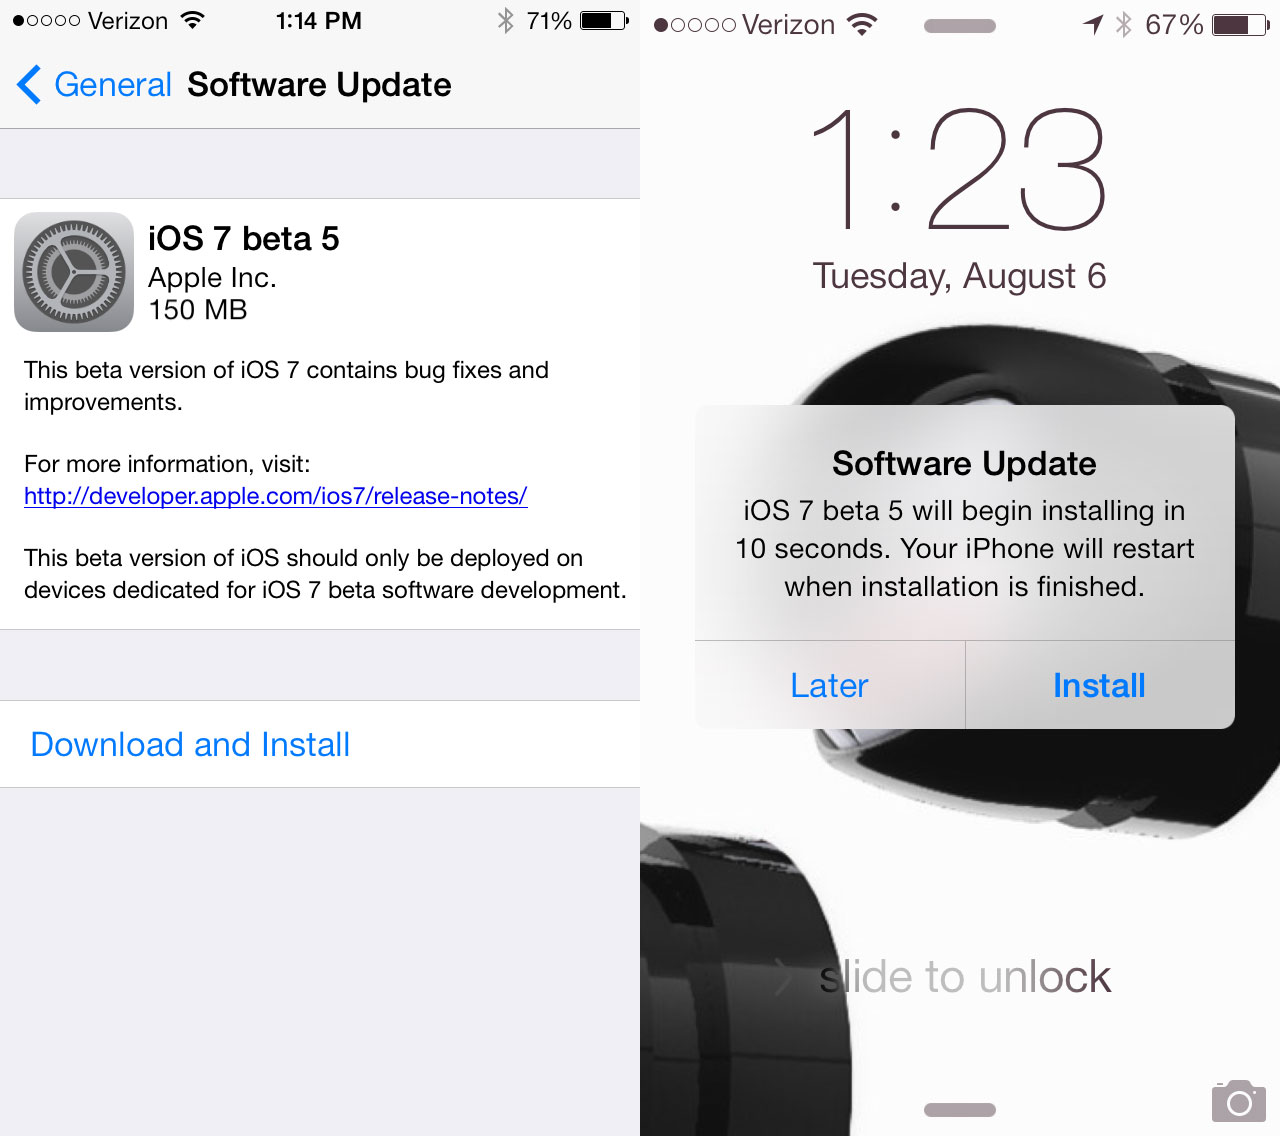 The iOS 7 beta 5 release surprises, arriving on a Tuesday with new enhancements.